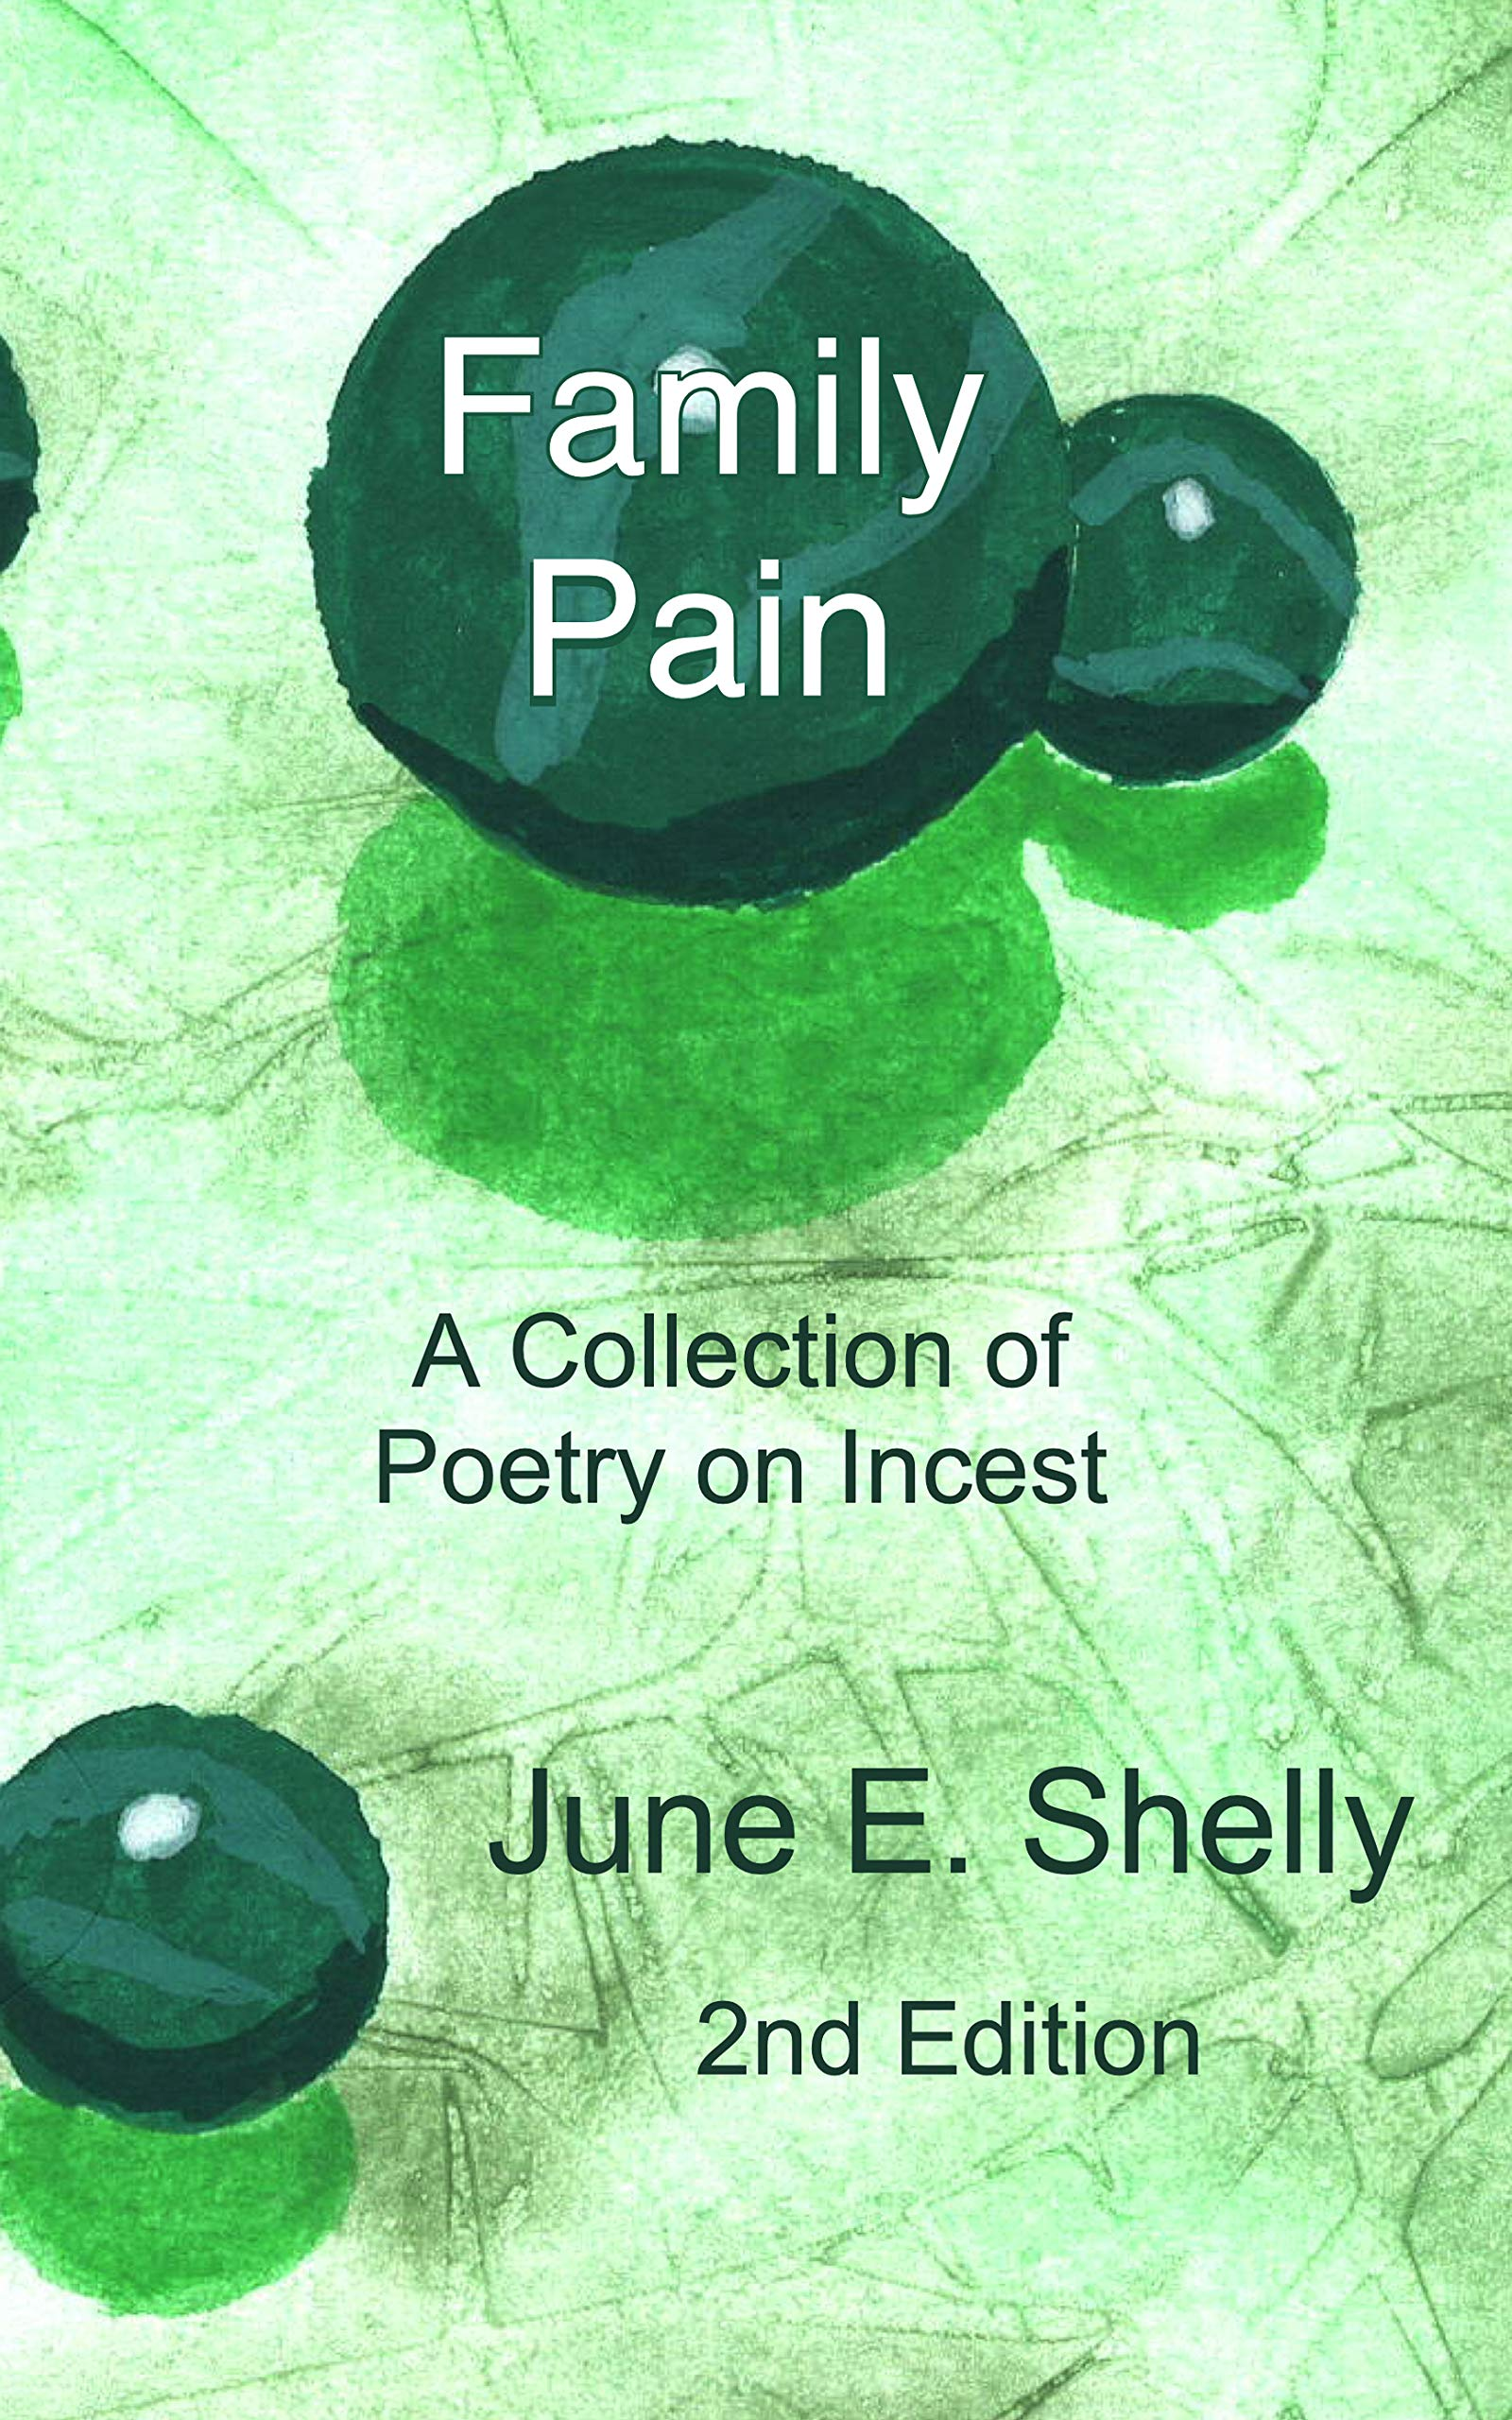 Family Pain: A Collection of Poetry on Incest